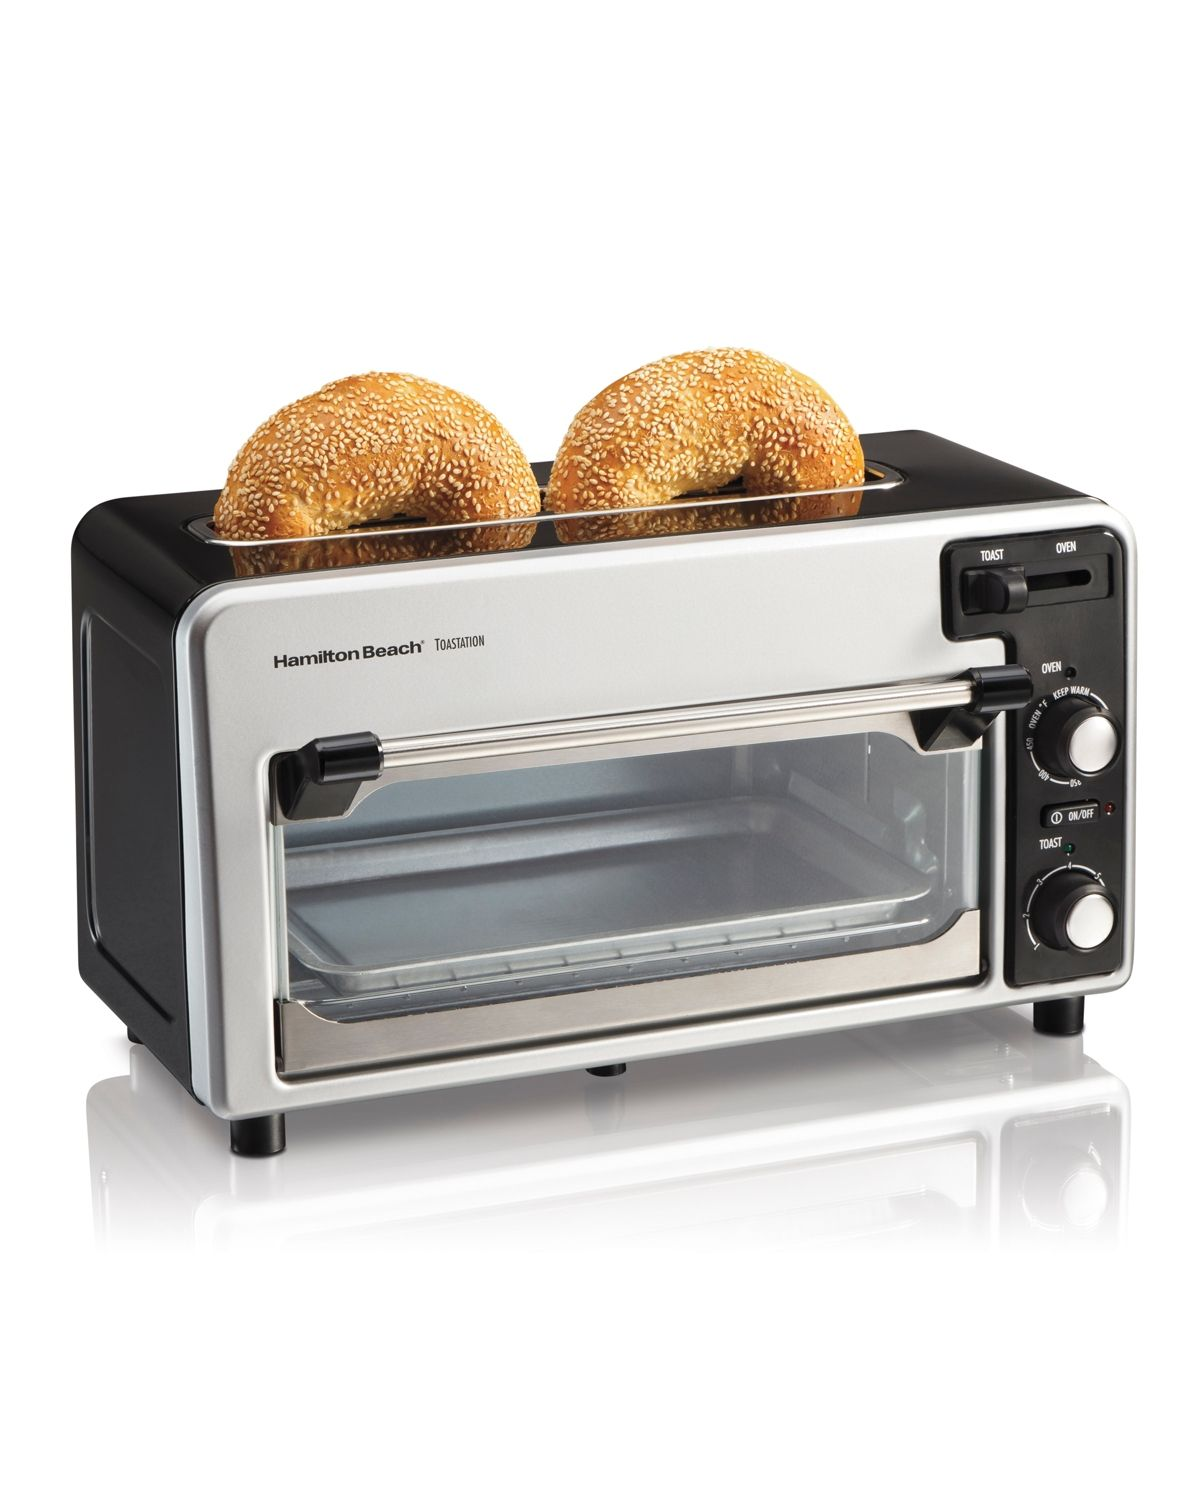 Hamilton Beach Toastation Toaster And Oven Black Oven Models